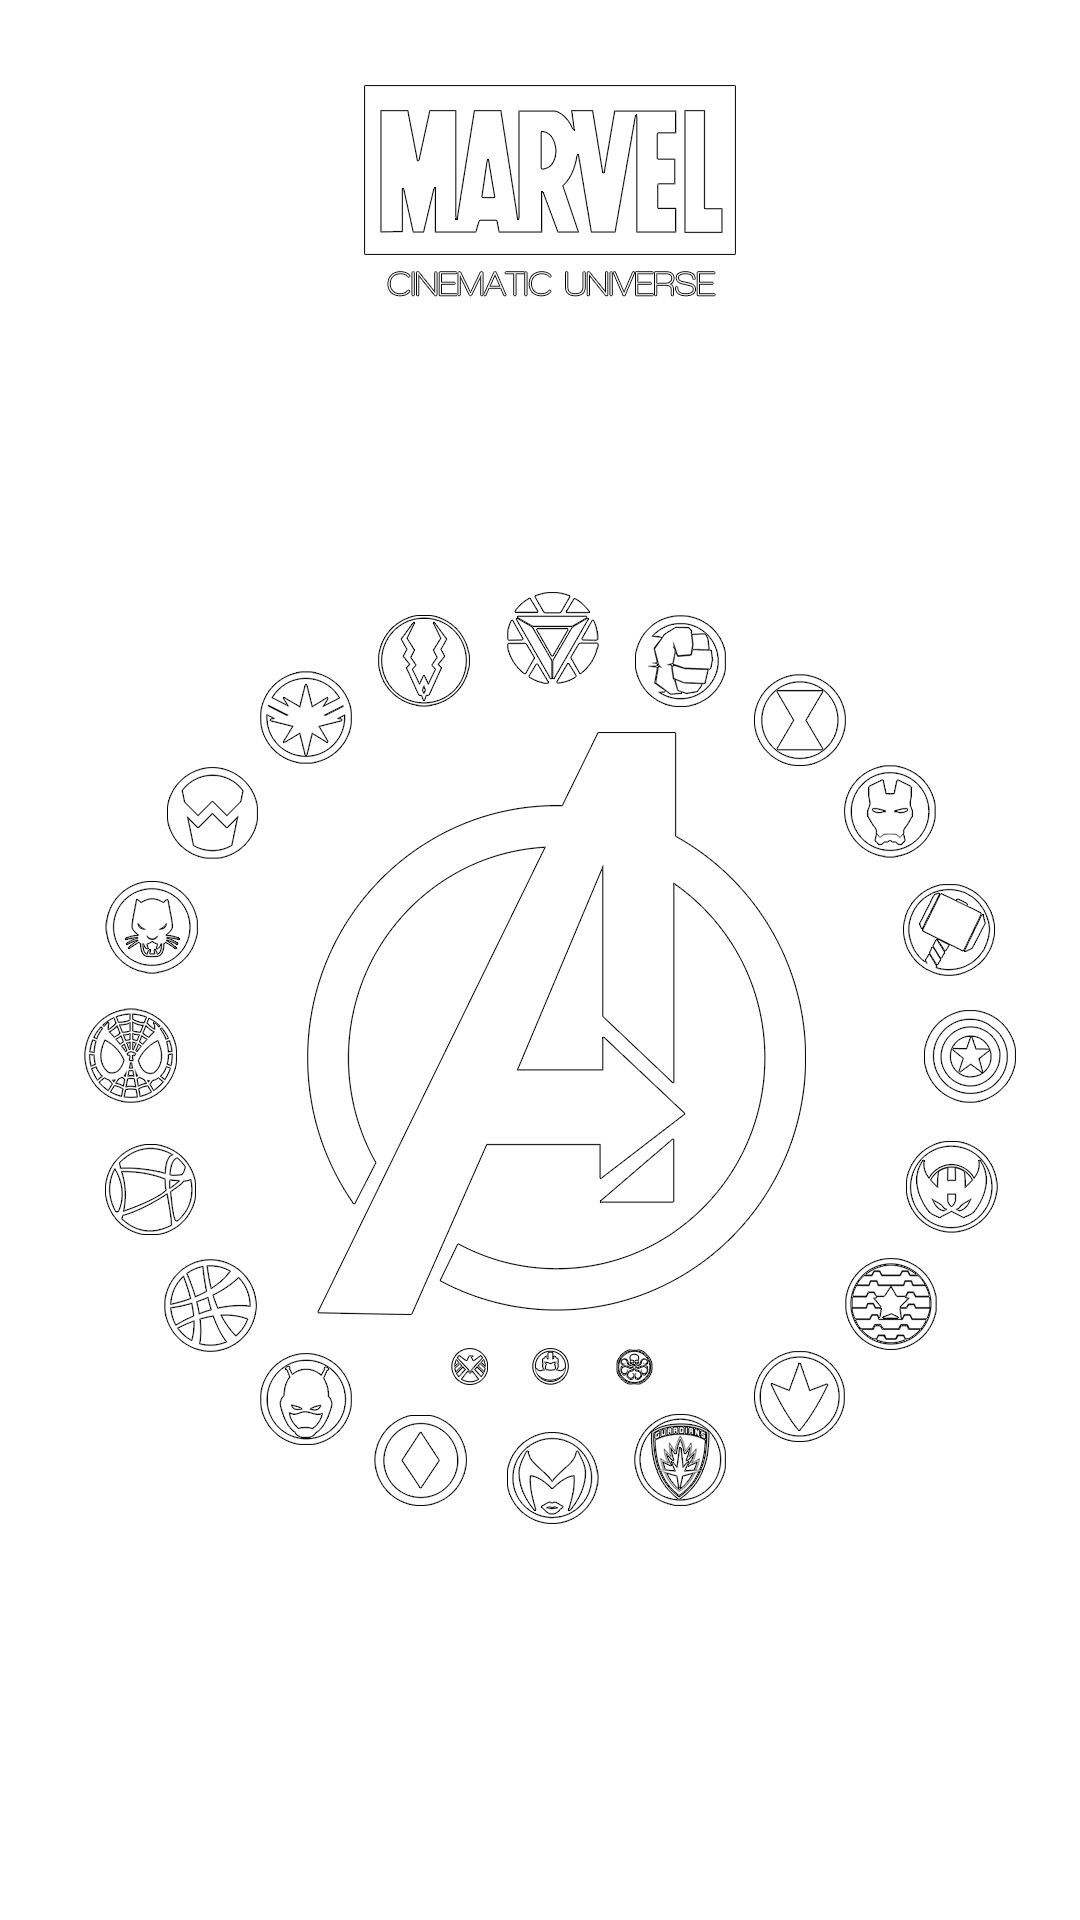 Get Cool Hero Logo Wallpapers for Android Phone This Month from Uploaded by user #wallpaper #wallpaperbackgrounds #wallpaperiphone #wallpapertumblr #wallpaperideas #wallpapersforiphone  #Android #HeroLogo #iPhone #Smartphone